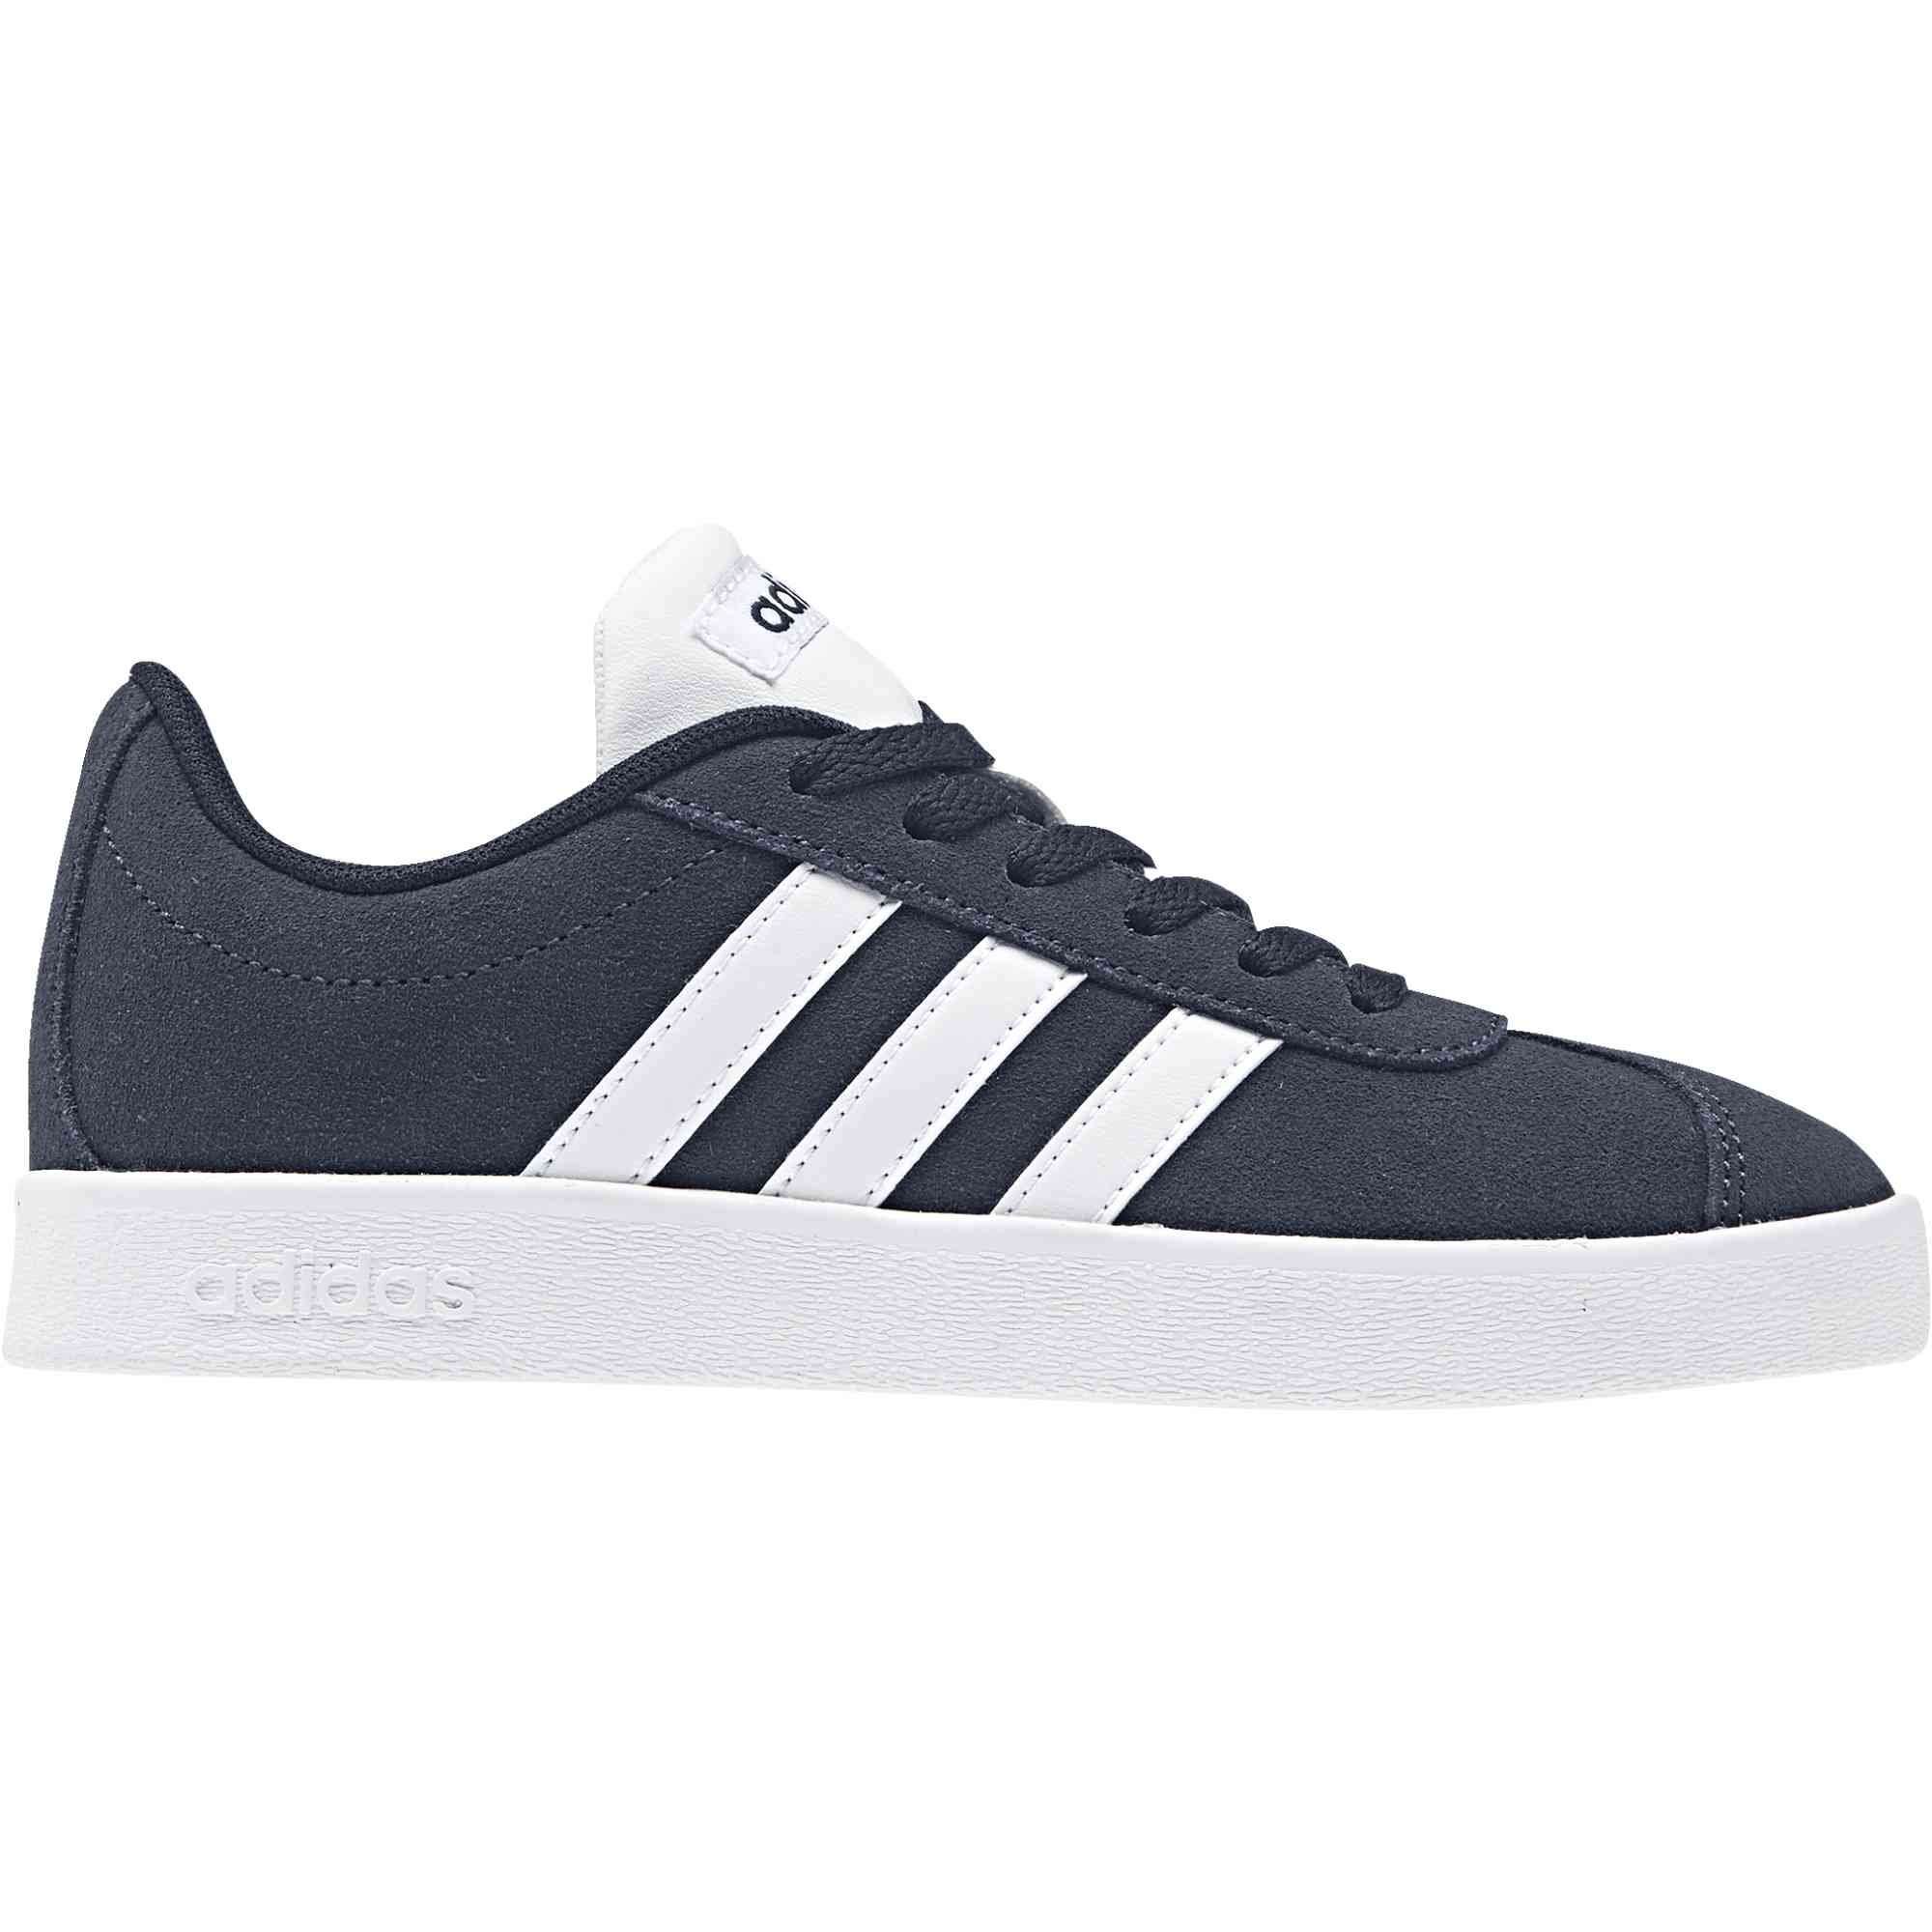 ADIDAS VL Court junior schoenen